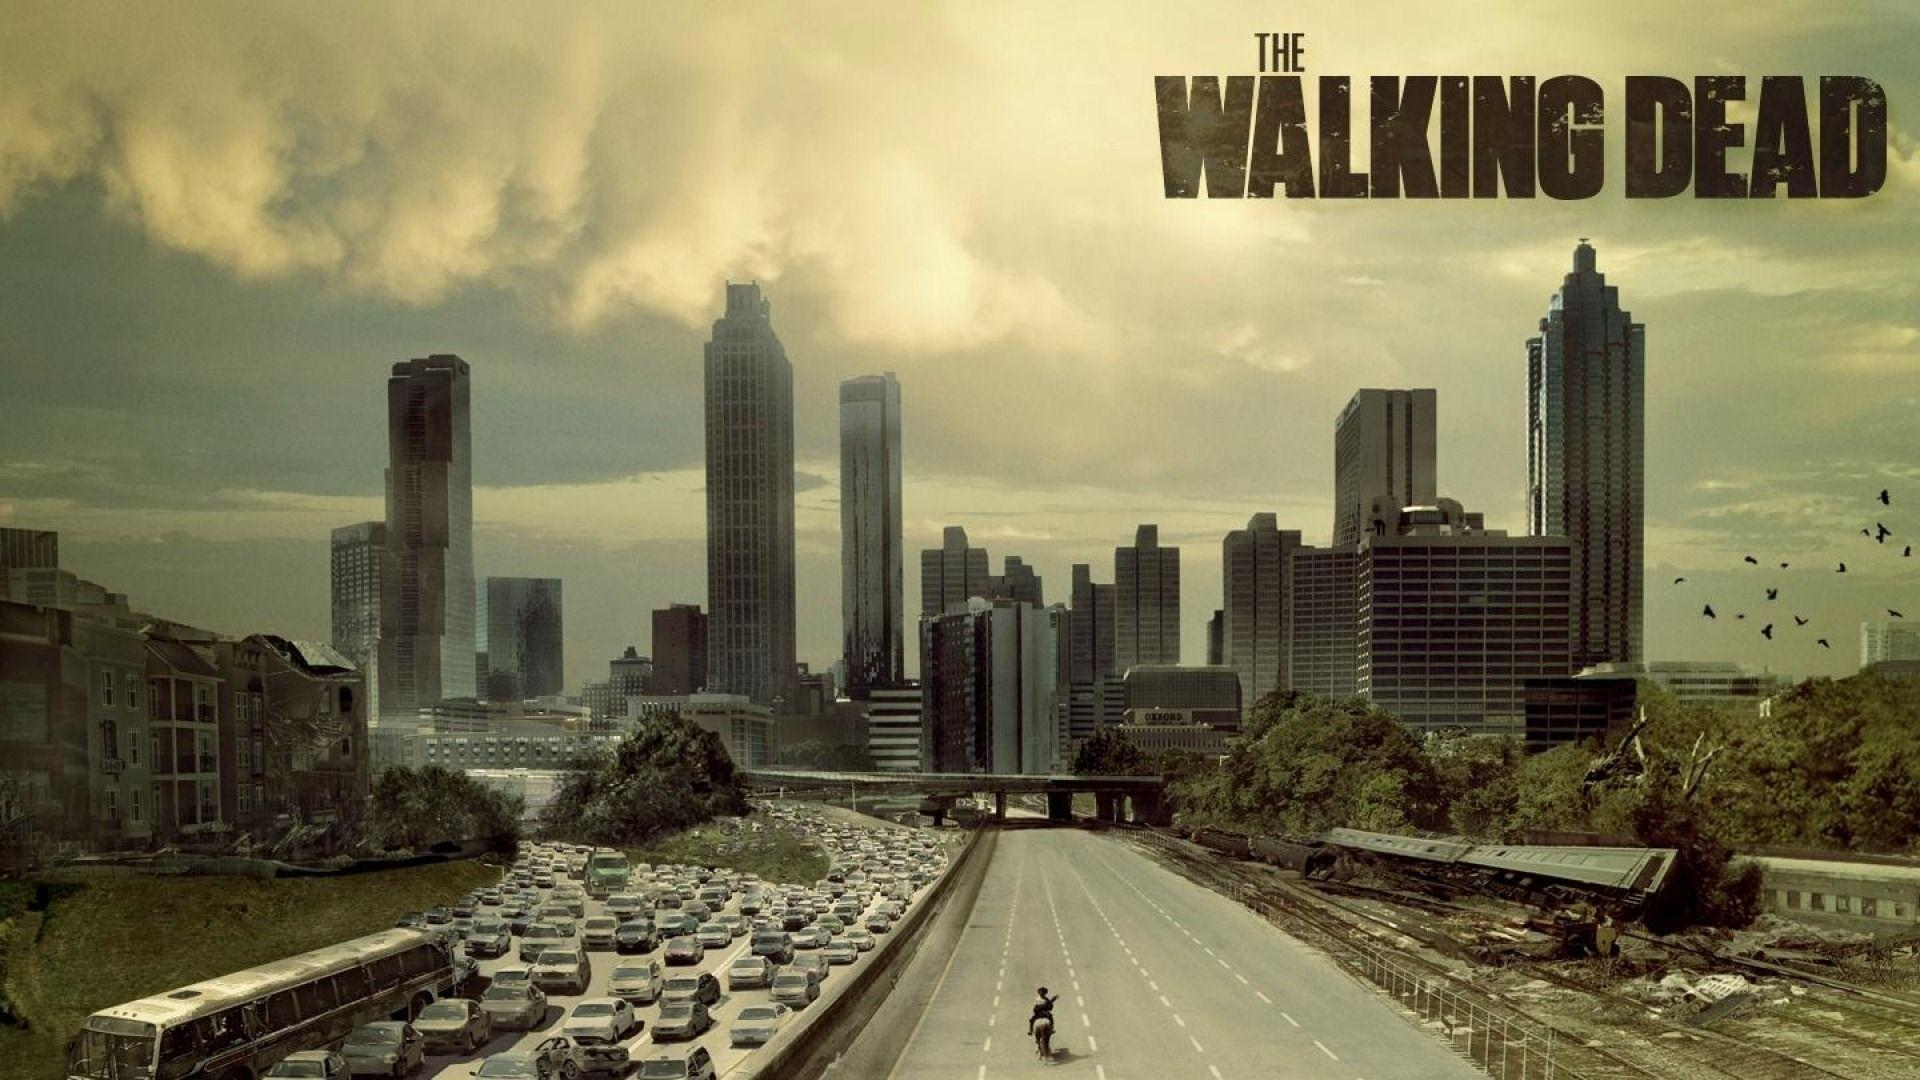 Image For > The Walking Dead Season 3 Wallpapers 1920x1080